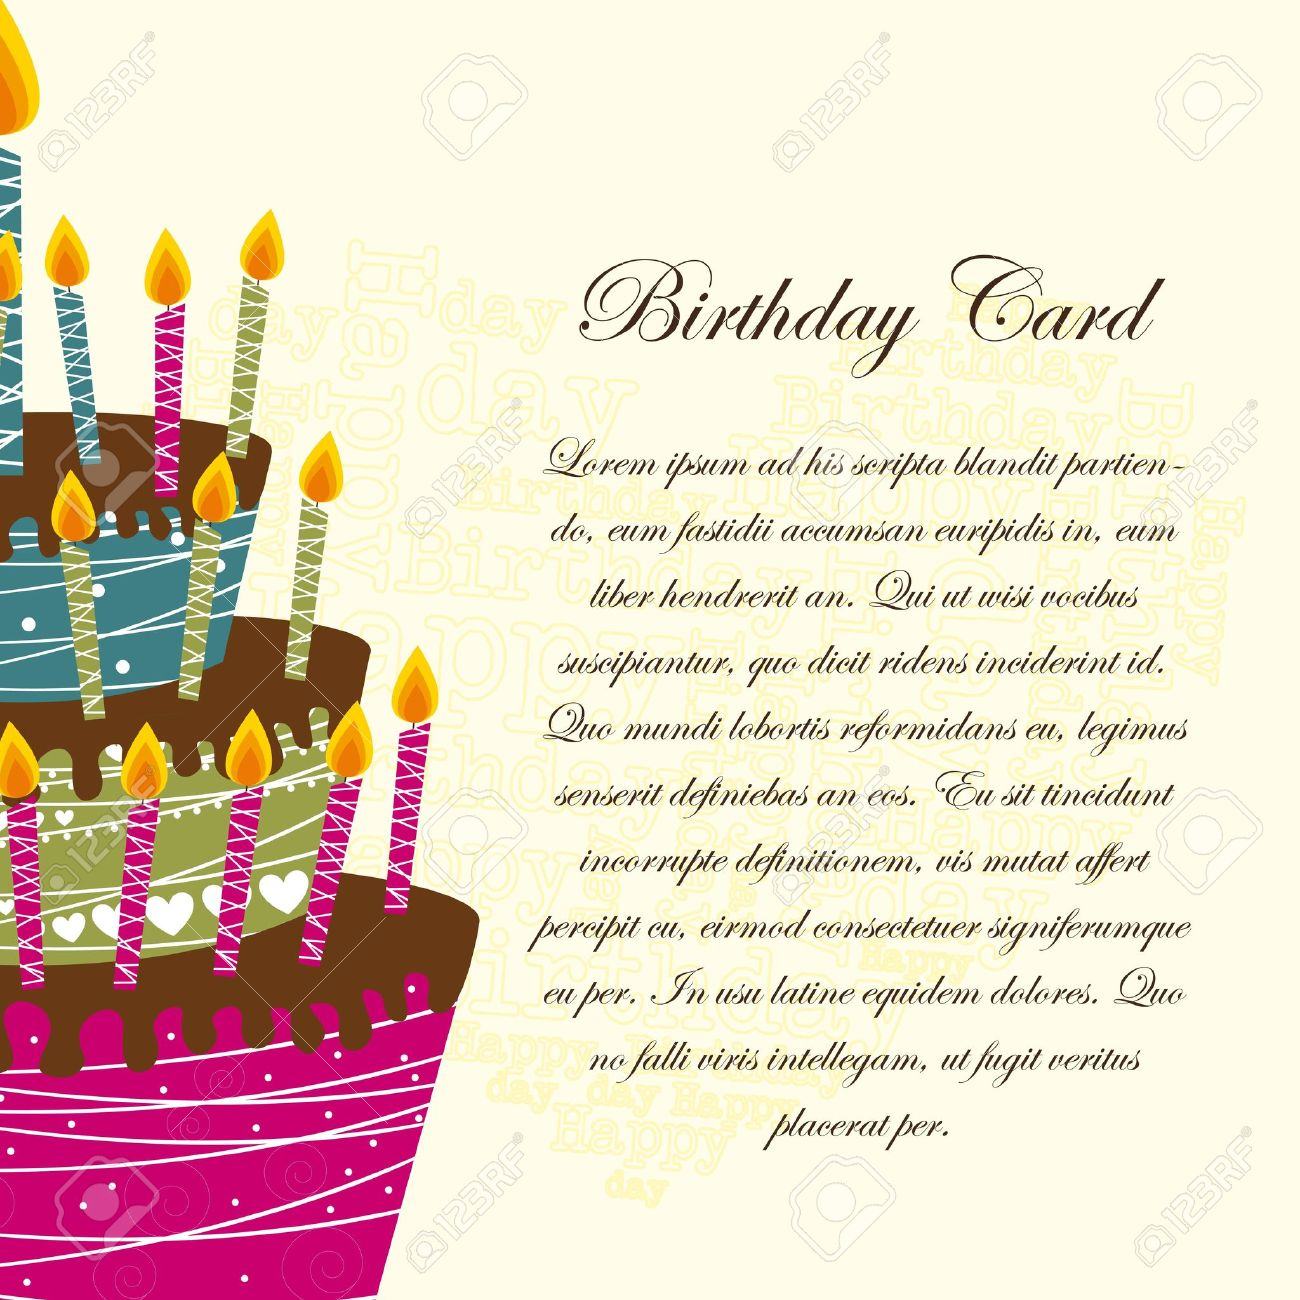 Birthday Card With Cake Over Beige Background Royalty Free – Invitation Birthday Card